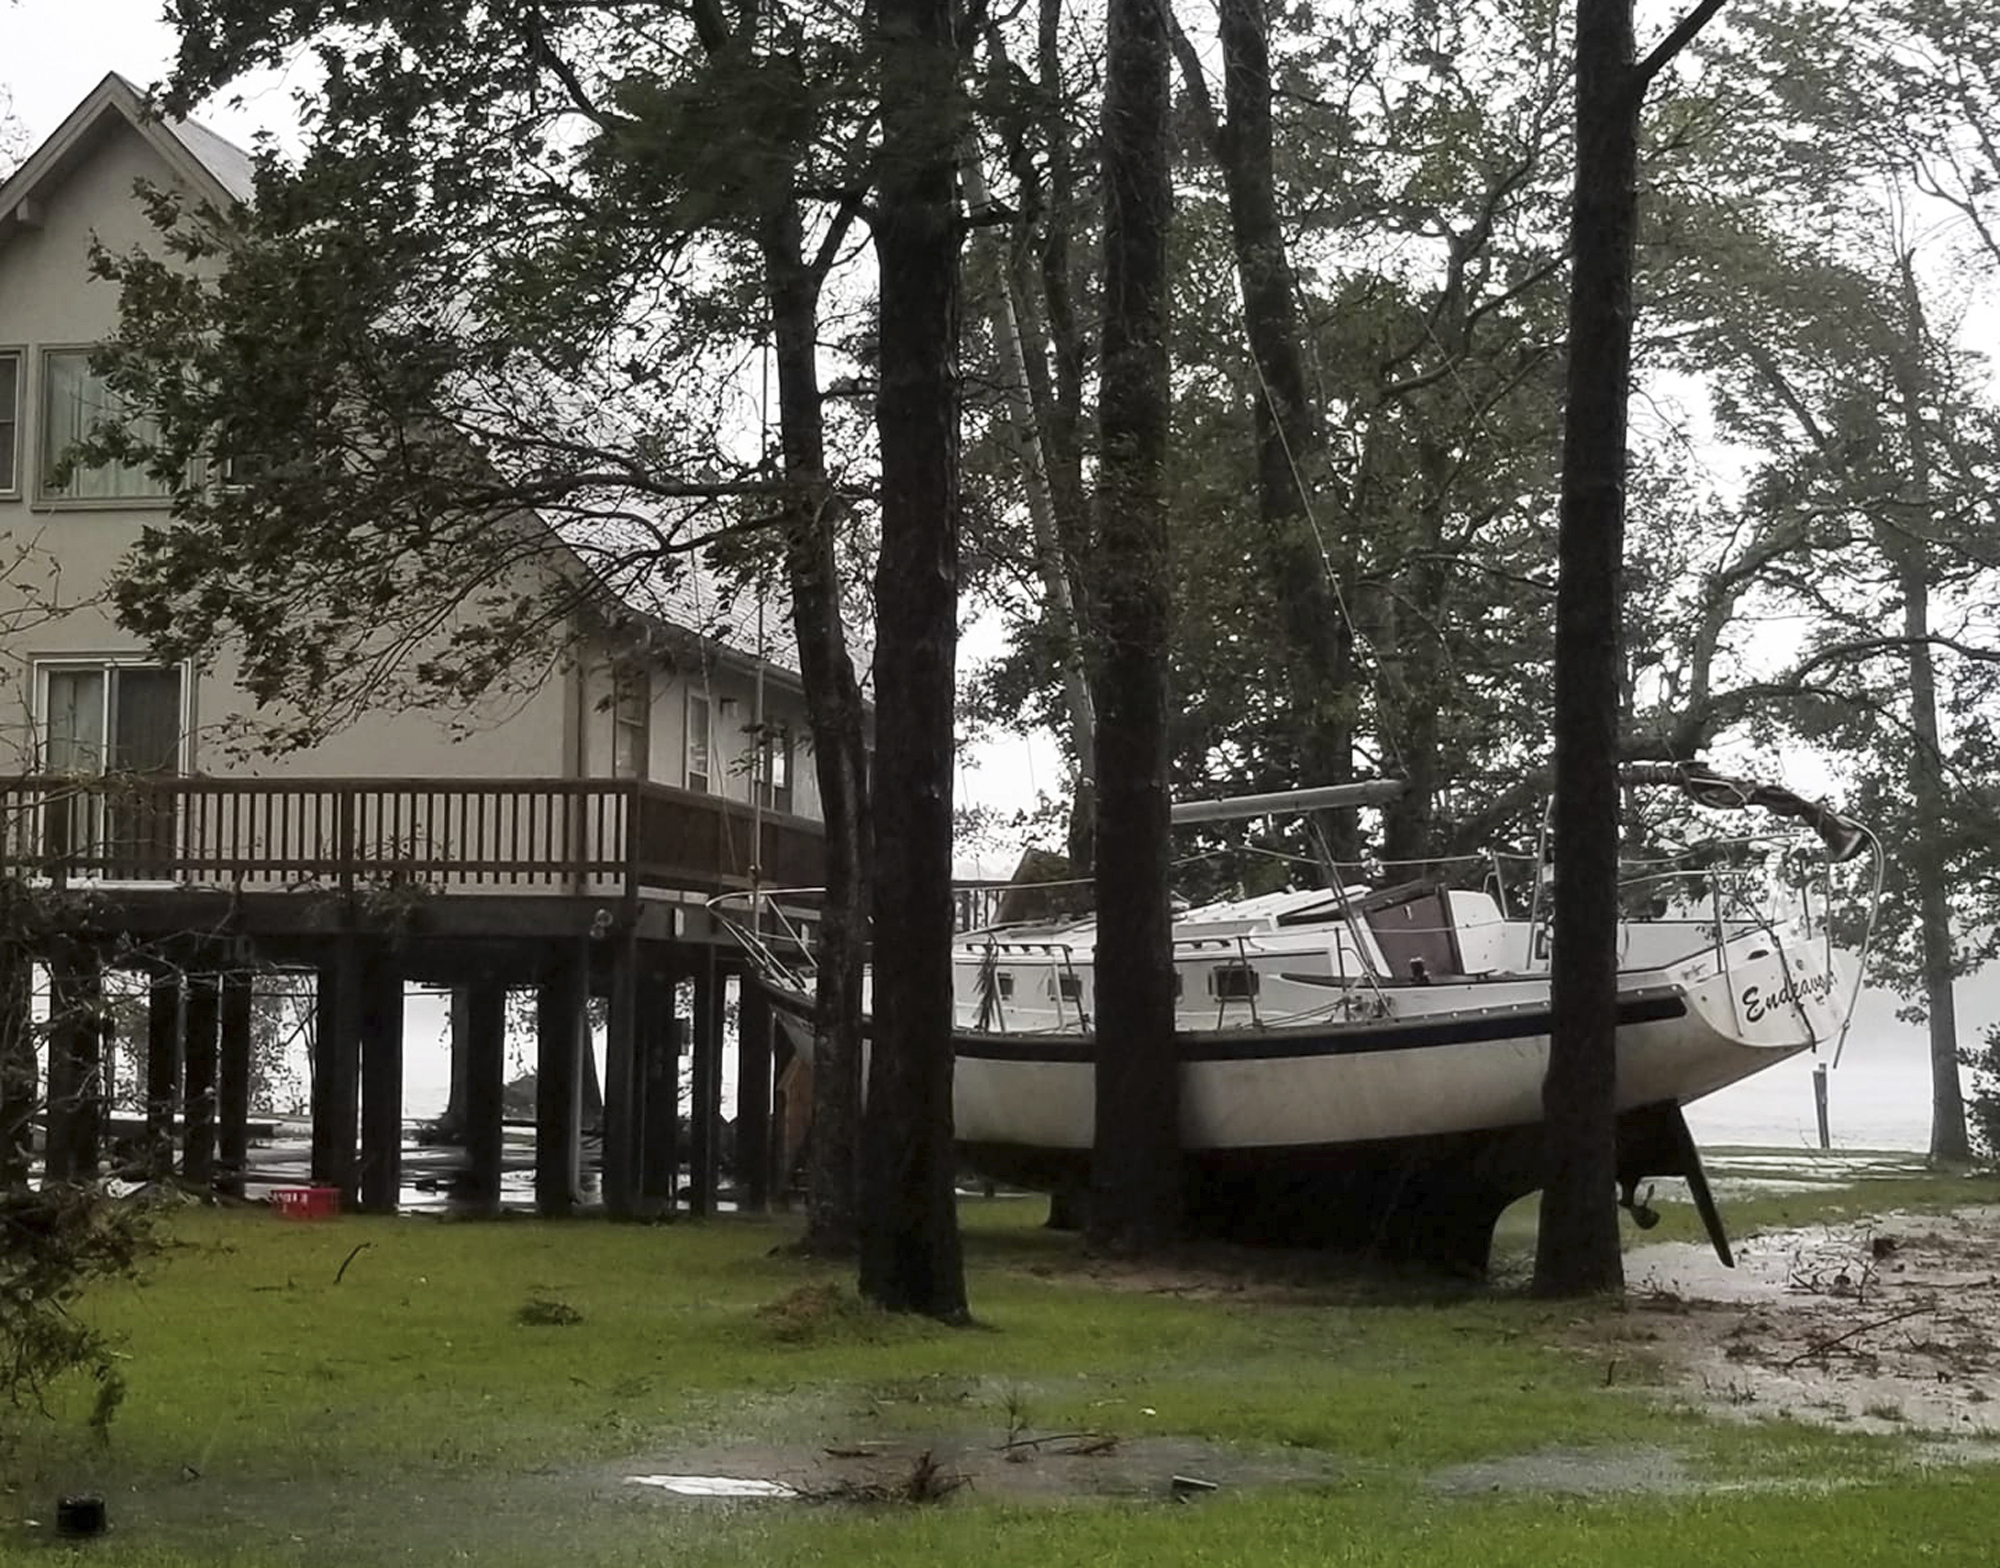 Can you buy flood insurance now that will cover damage by Florence?